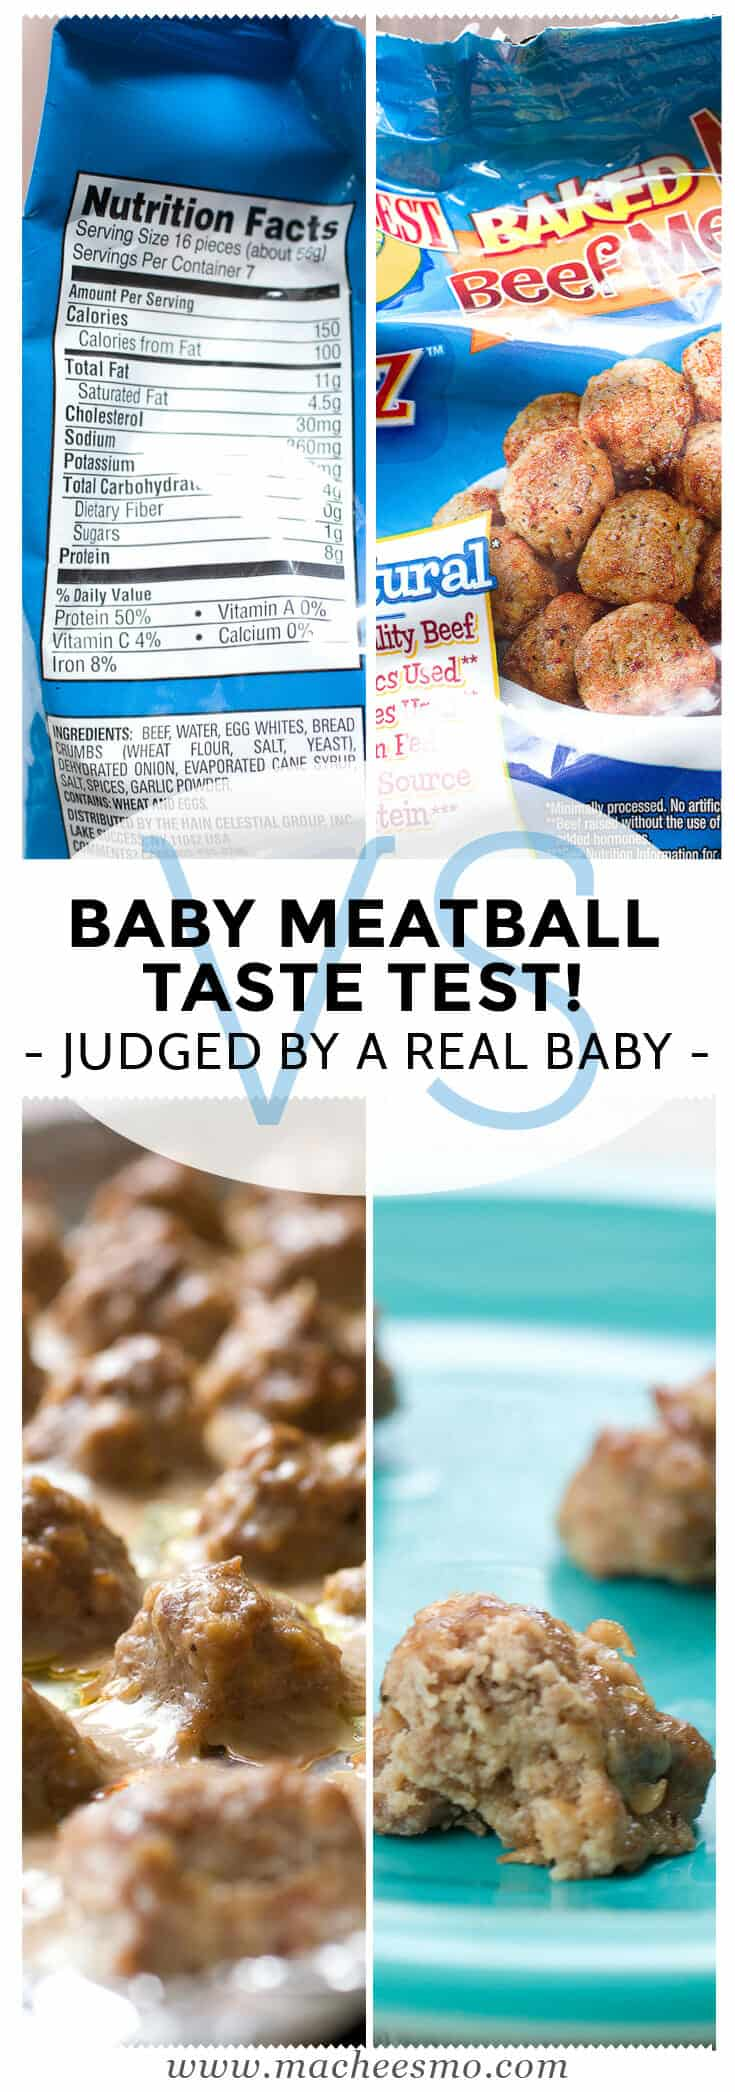 A Baby Meatball Taste Test: My little guy is a big fan of frozen meatballs, but they look simple enough to make at home. Can my homemade version beat his favorite store-bought variety? Only one way to find out! | macheesmo.com